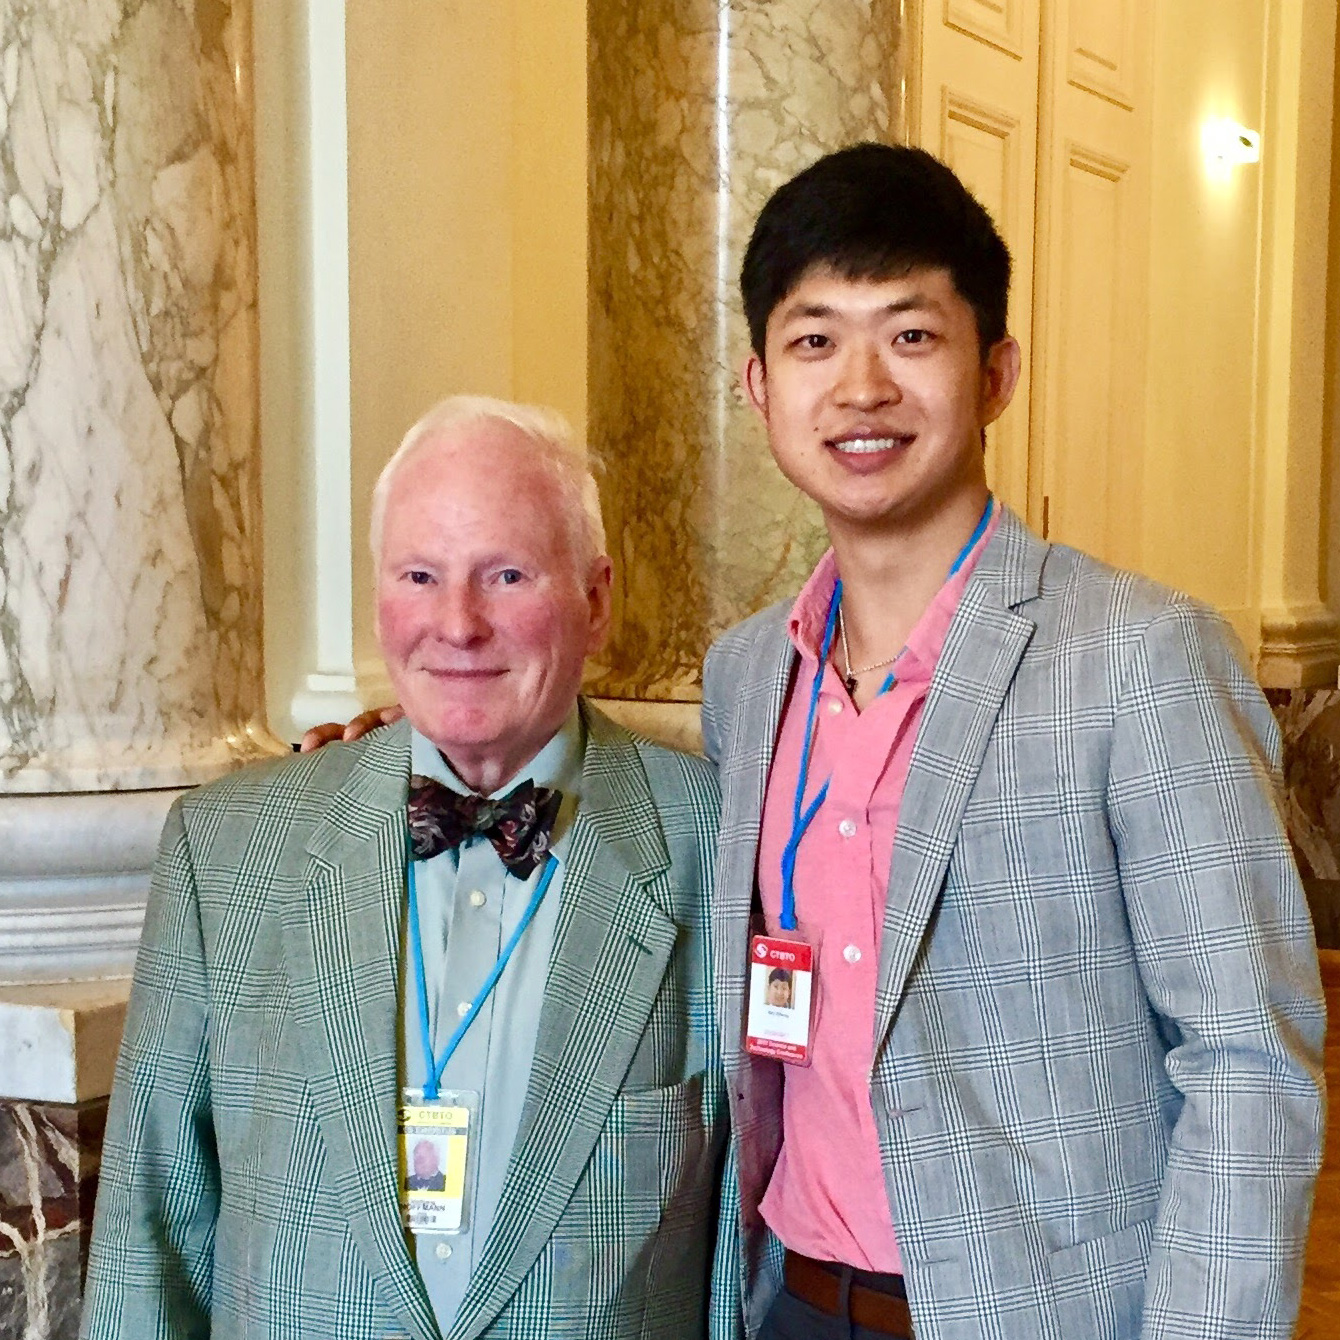 Kevin in Vienna with Wolfgang Hoffman, the founder and first Secretary of the CTBTO and the negotiator of the Comprehensive Nuclear Test Ban Treaty.